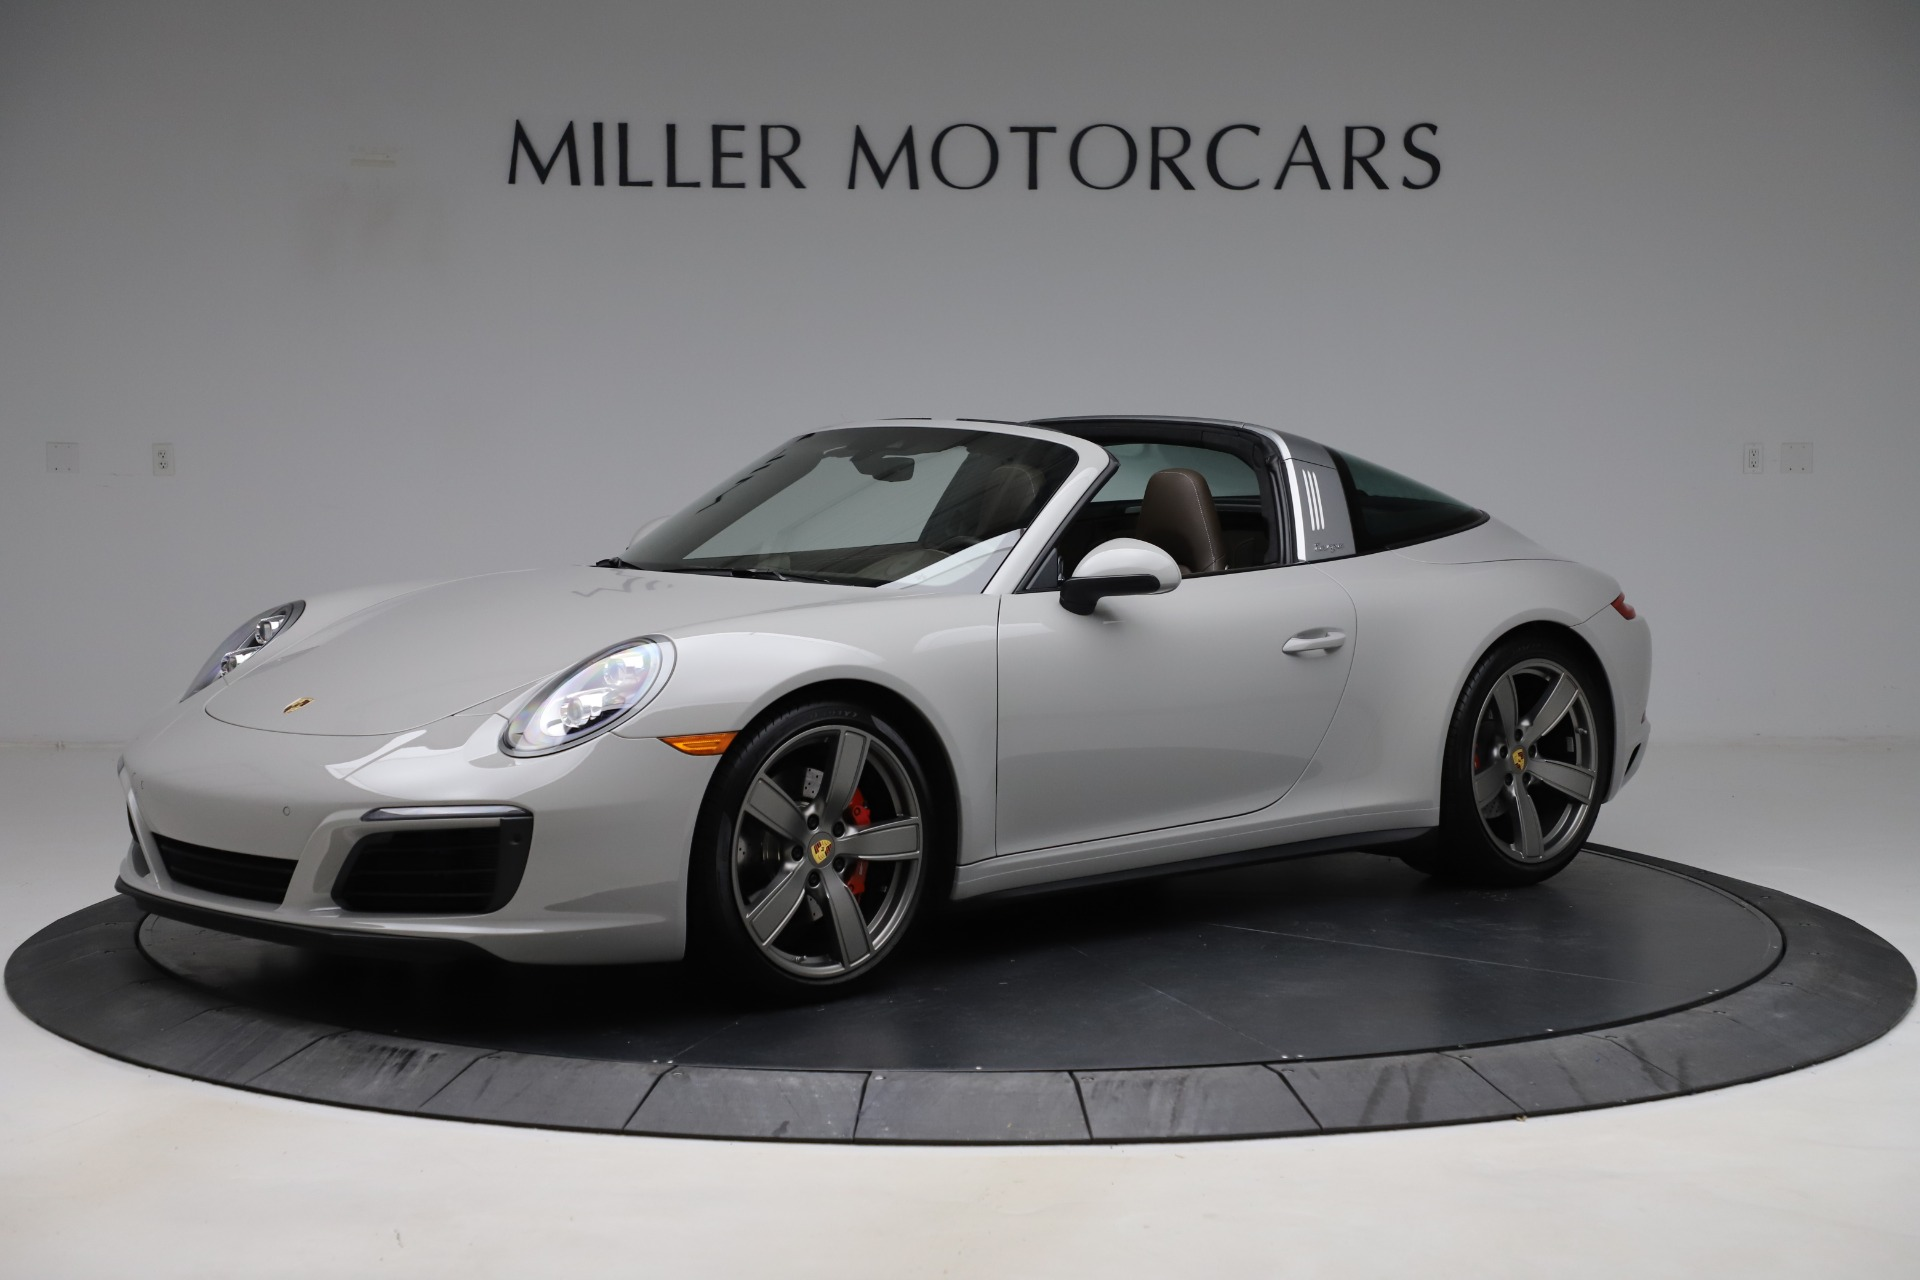 Used 2018 Porsche 911 Targa 4S for sale Sold at Aston Martin of Greenwich in Greenwich CT 06830 1